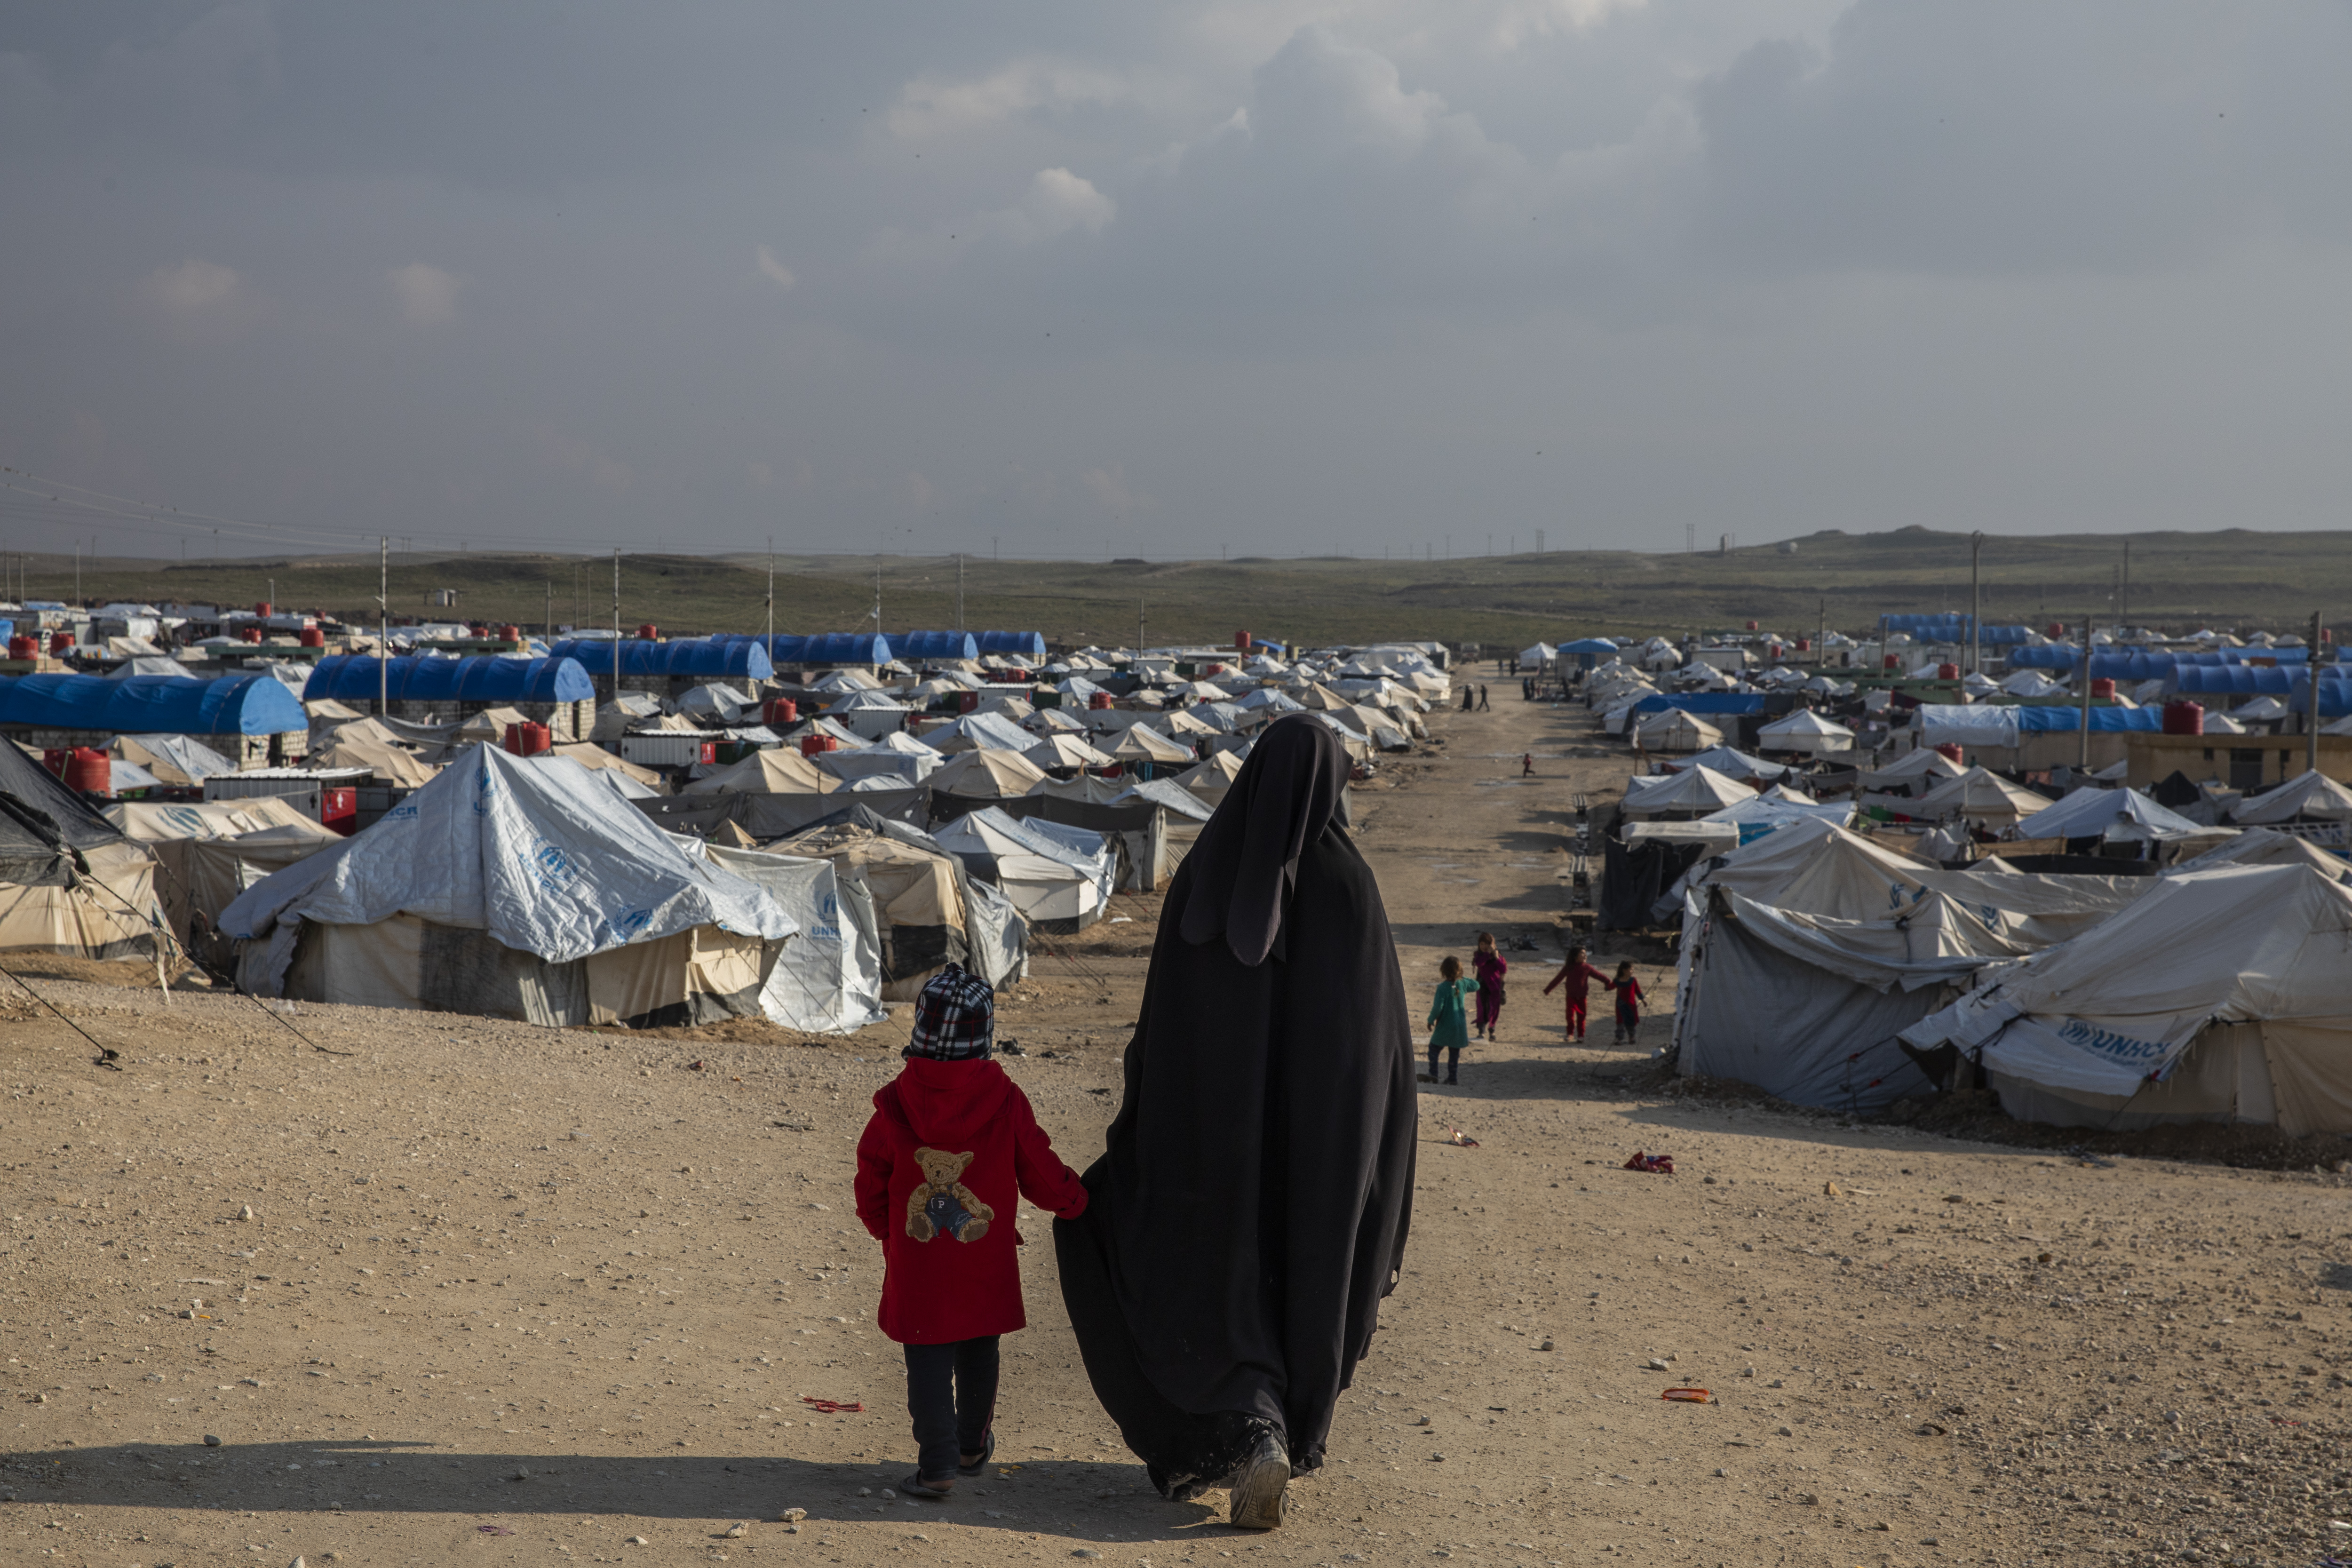 The Al-Hawl refugee camp in Syria, where many who have fled areas that were under control of the Islamic State group are now kept.